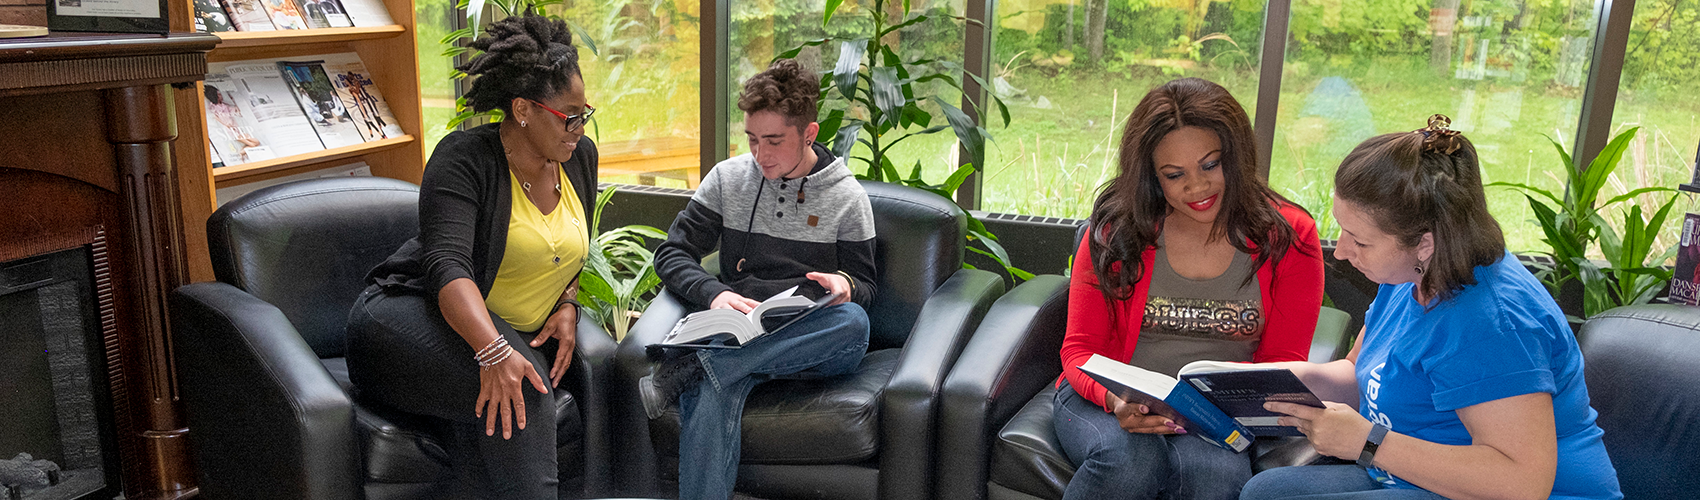 People reading together at the Georgian College Orillia Campus